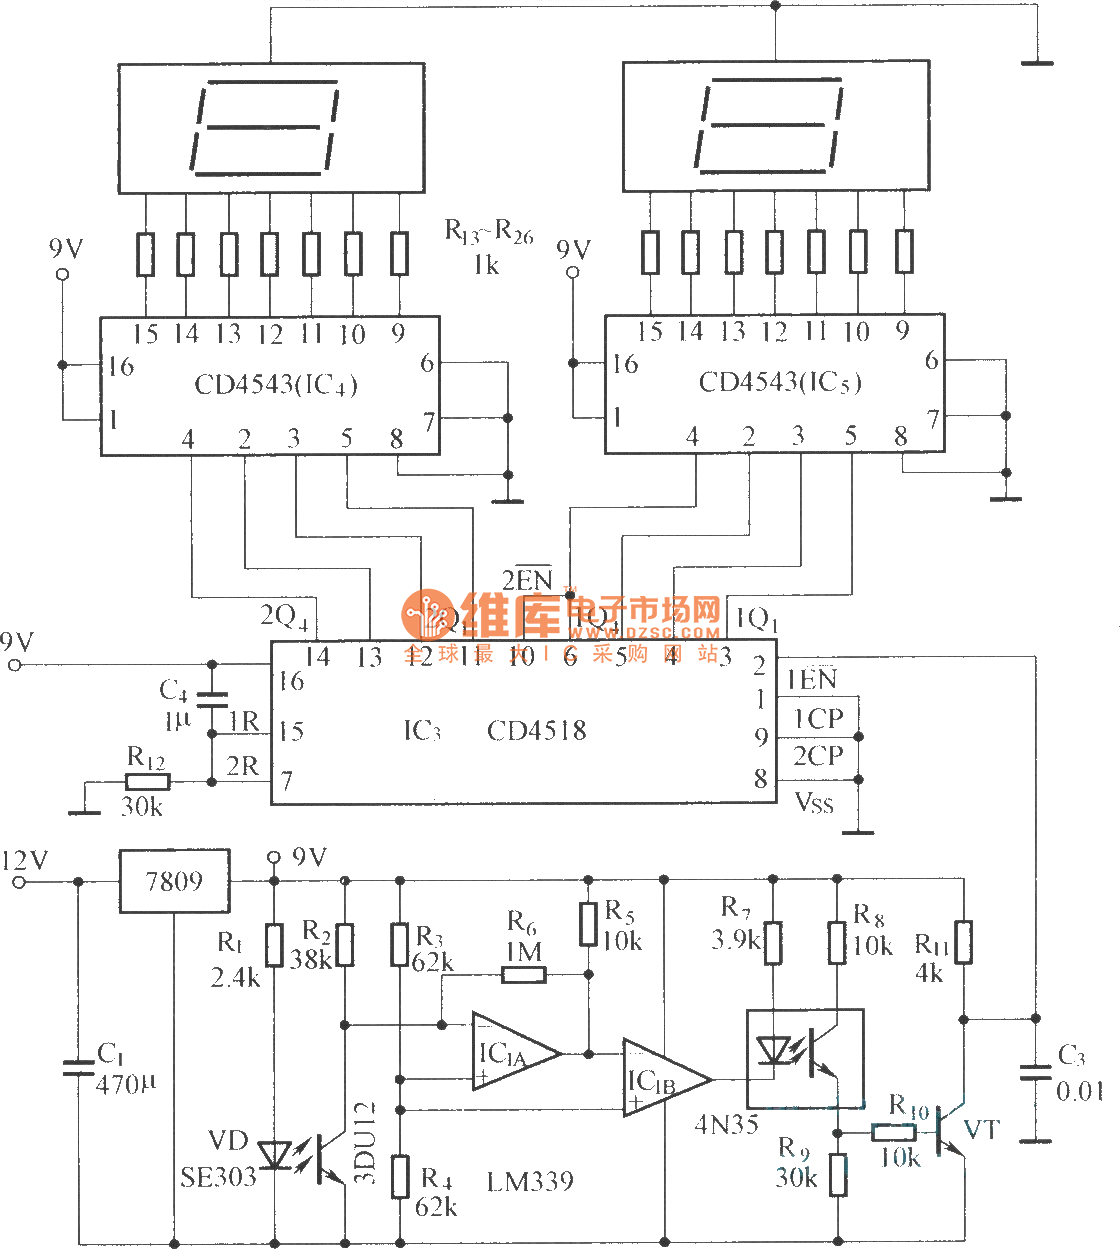 Digital Displaying Photoelectric Counter Circuit Diagram Threetonegenerator Signalprocessing Seekic